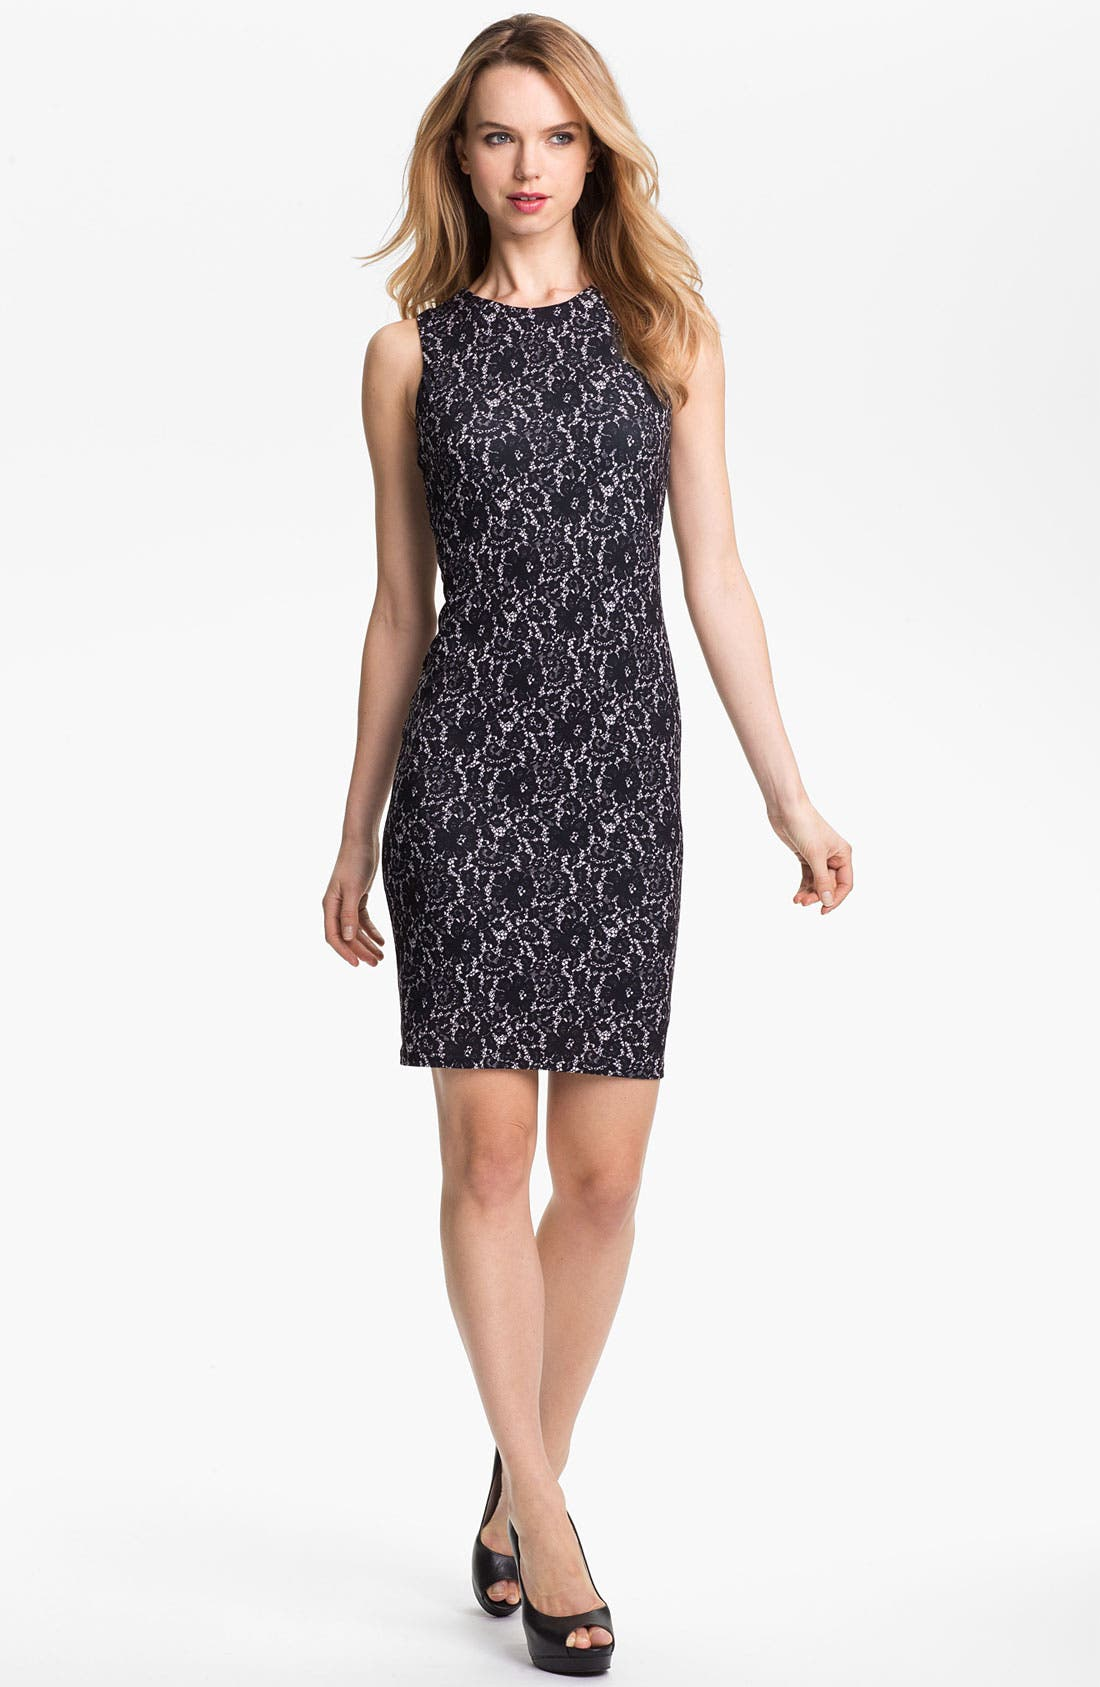 Main Image - Vince Camuto Lace Print Sheath Dress